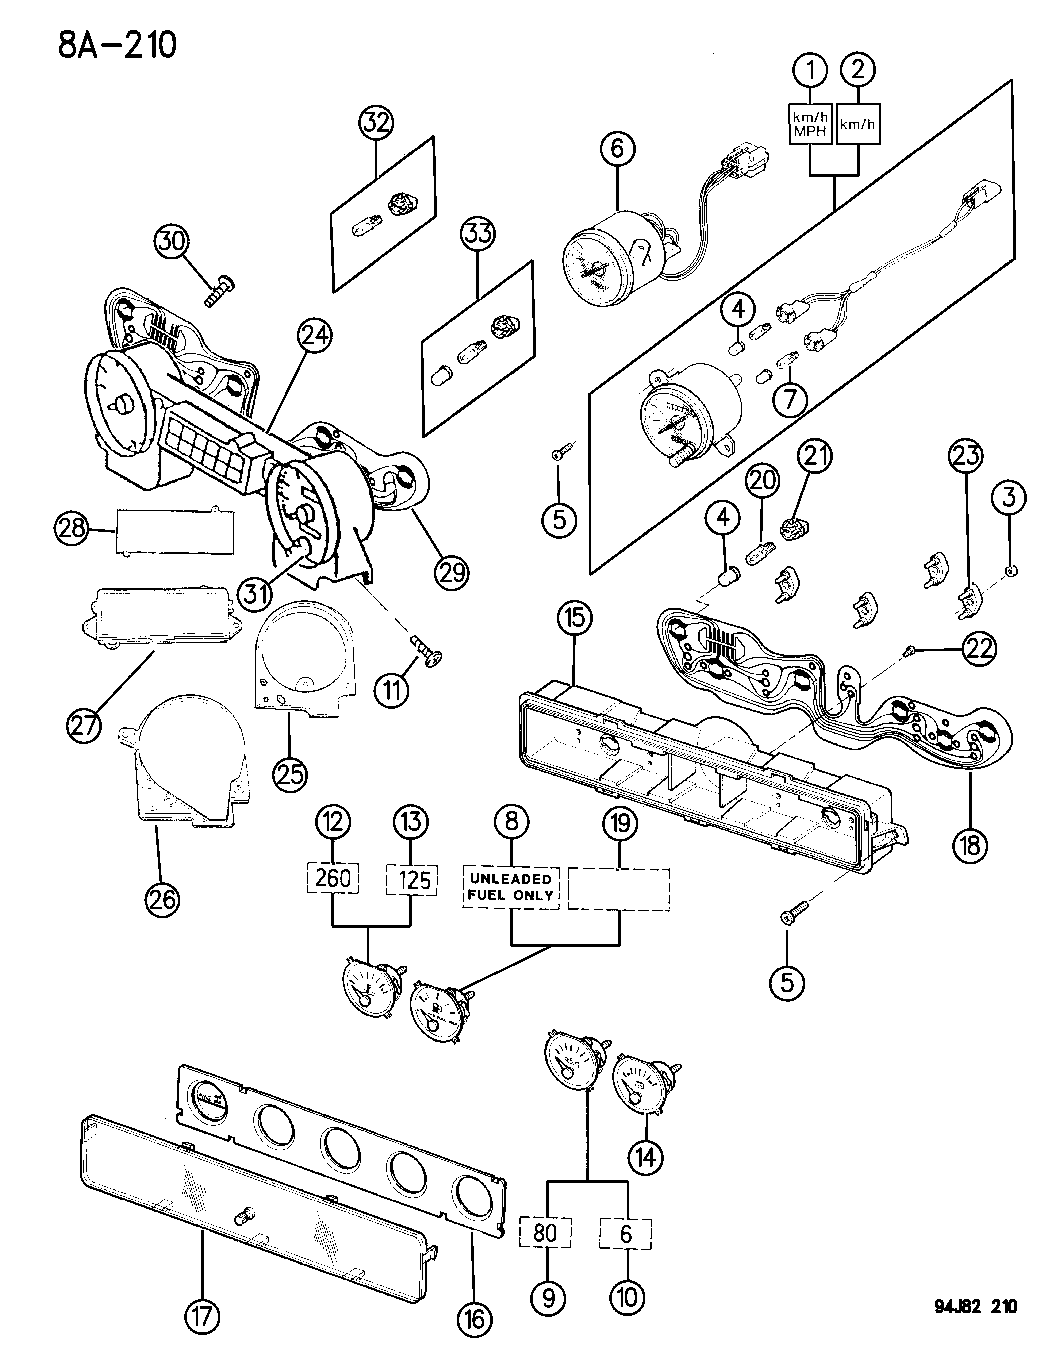 1995 Jeep Wrangler Instrument Cluster - Mopar Parts Giant  Jeep Yj Sdometer Wiring Diagram on